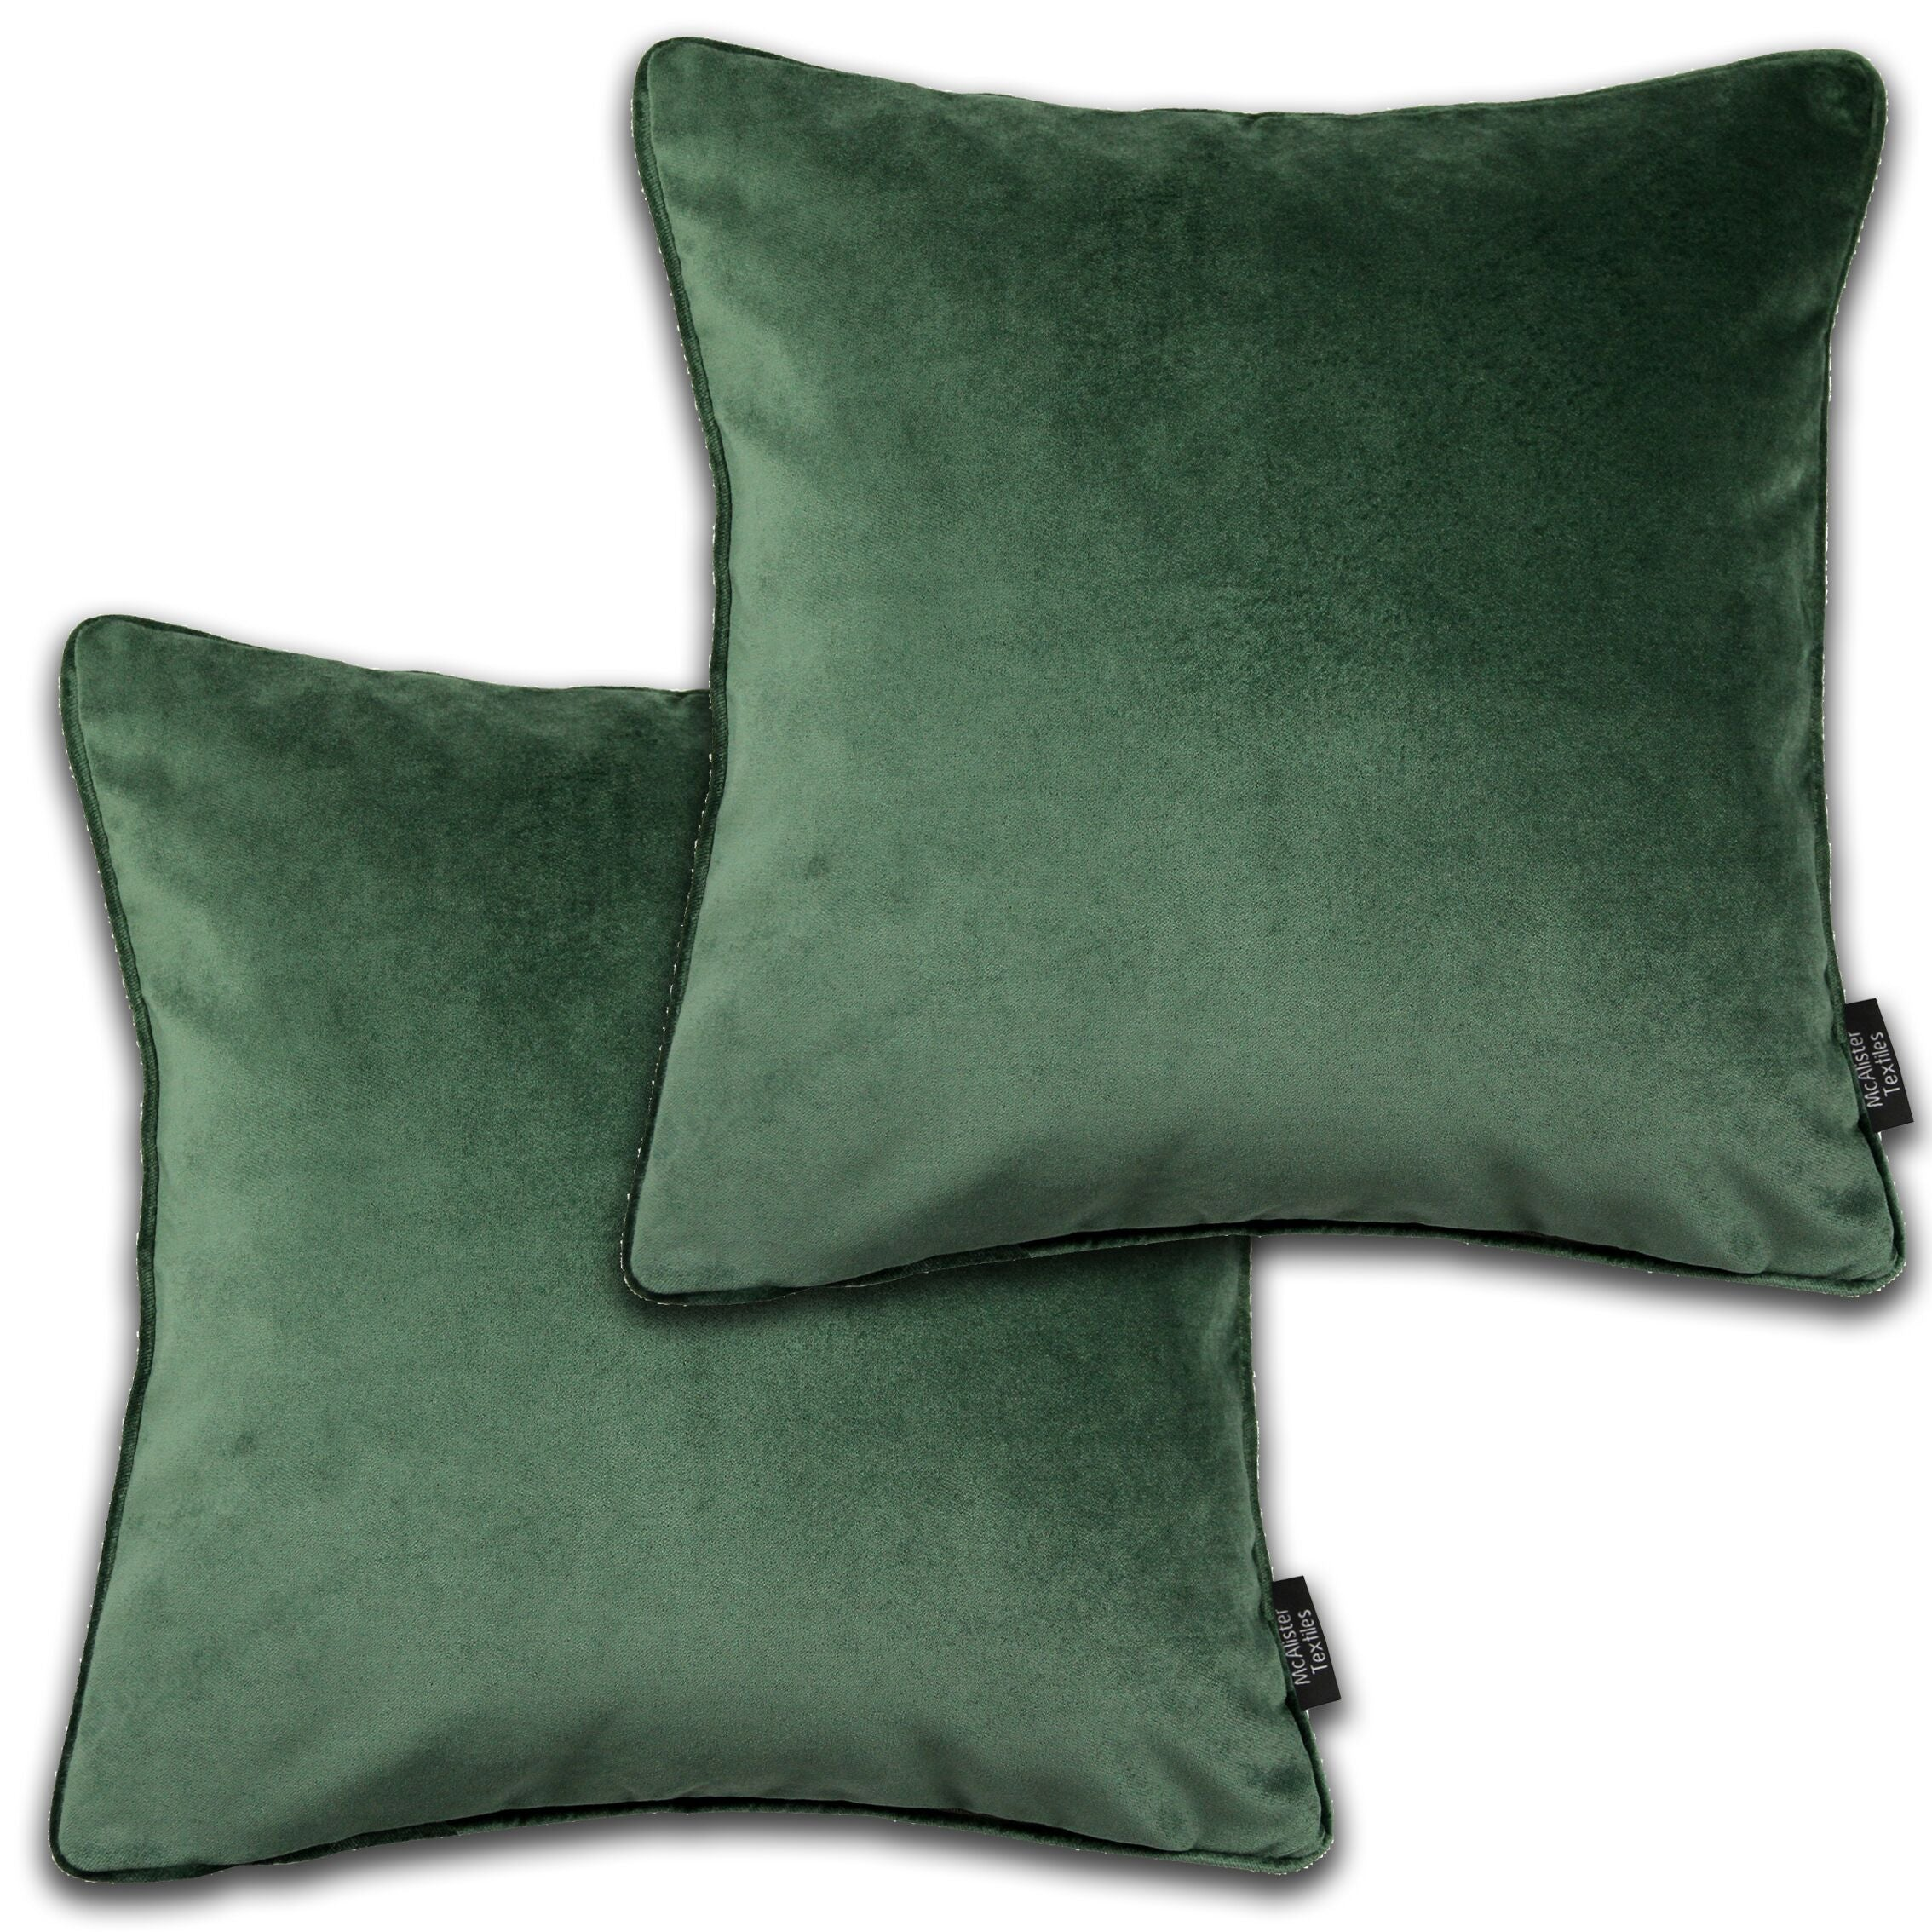 McAlister Textiles Matt Moss Green Velvet 43cm x 43cm Cushion Sets Cushions and Covers Cushion Covers Set of 2